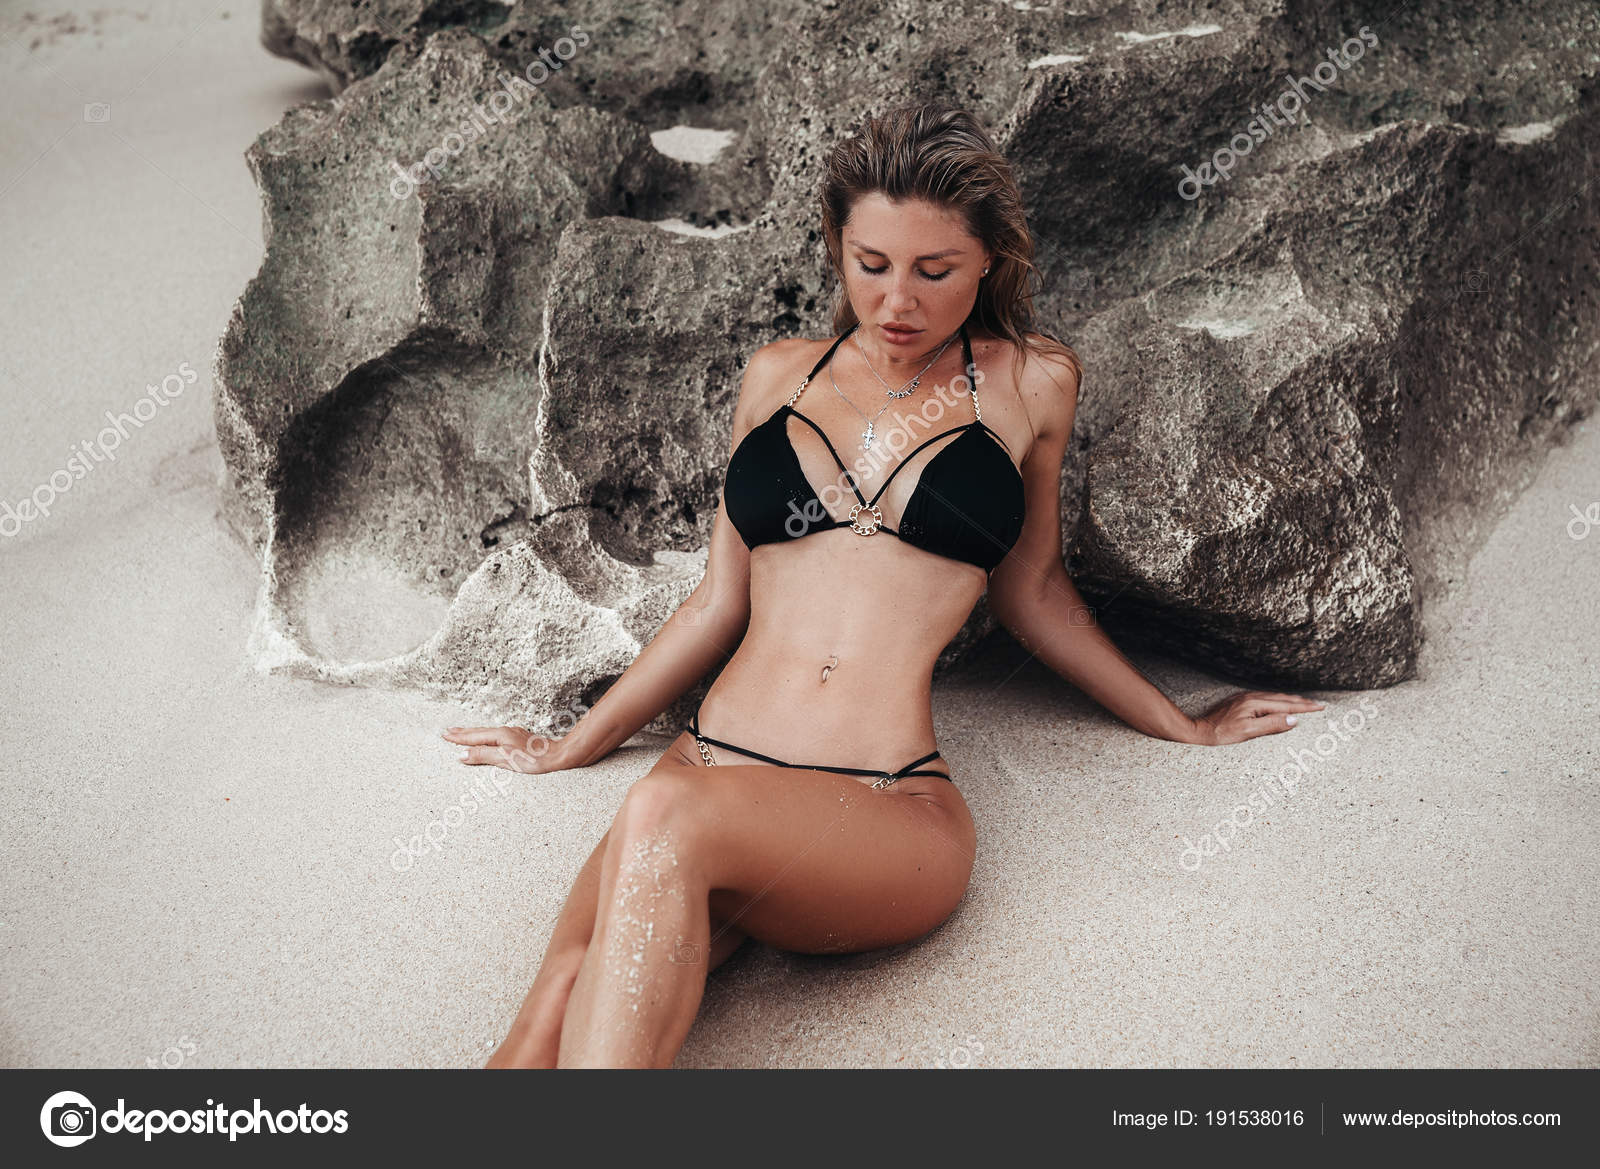 Blond girl with big breasts in a black swimsuit on a white sand beach.  Portrait of a young woman with a beautiful body.